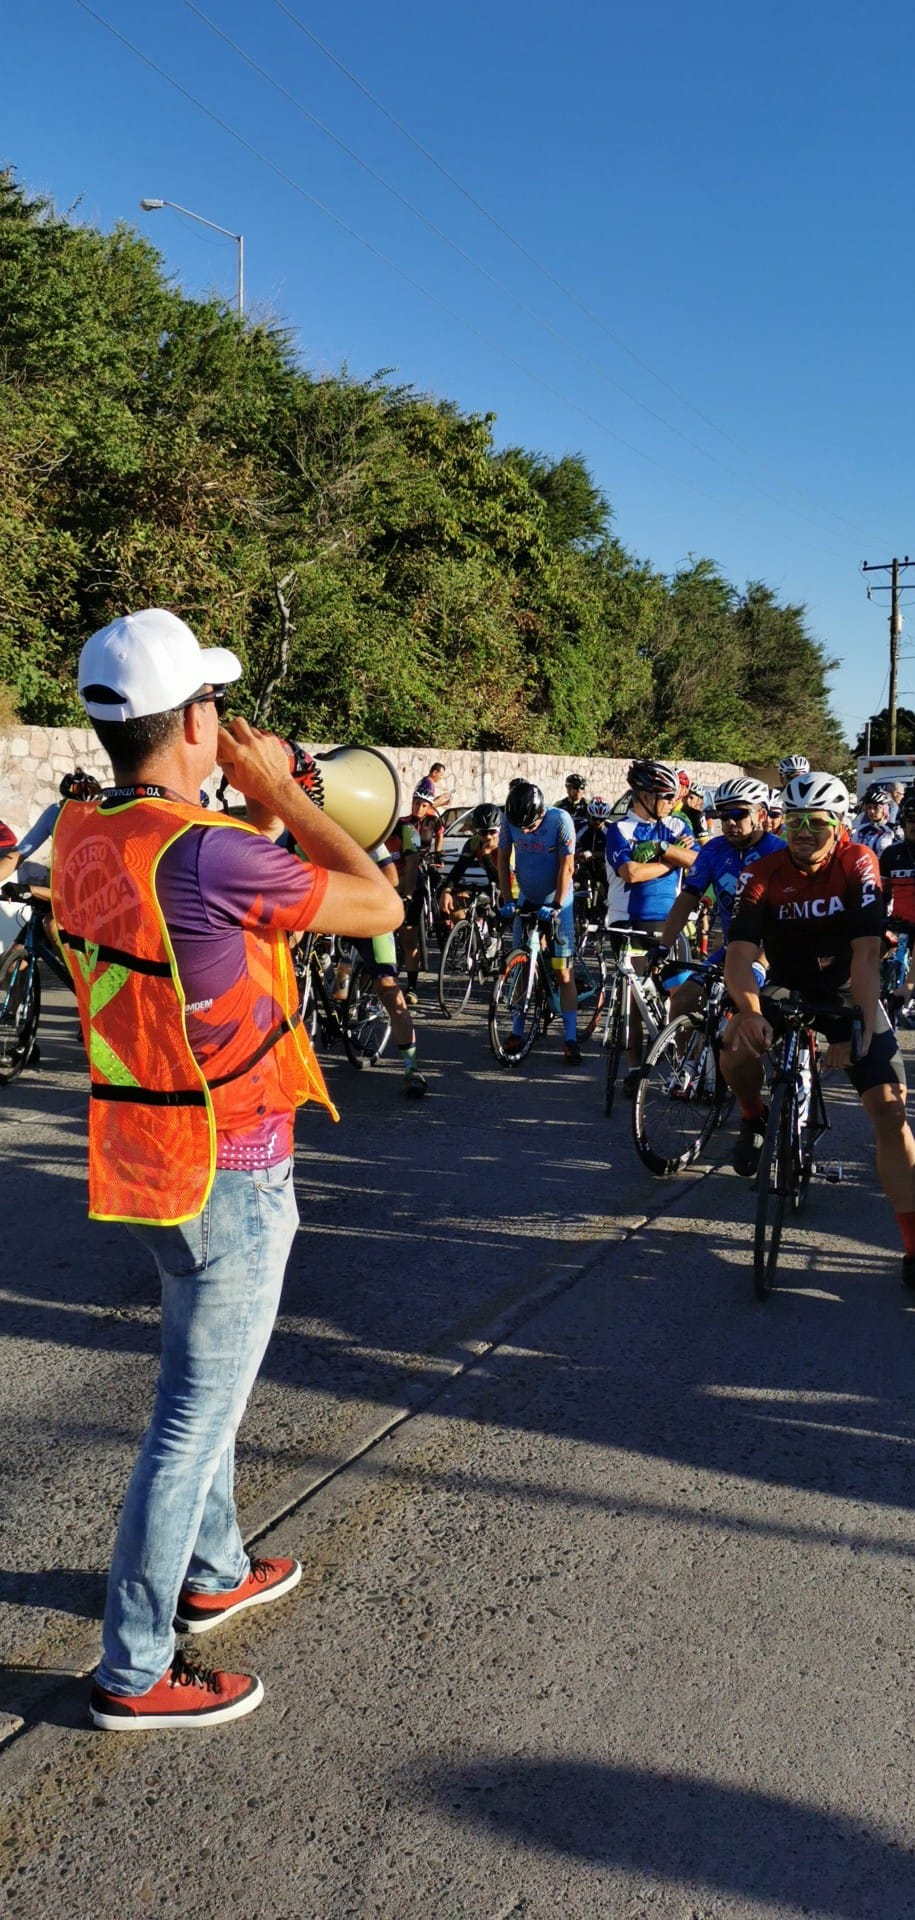 The Gran Fondo's Return to Cozumel